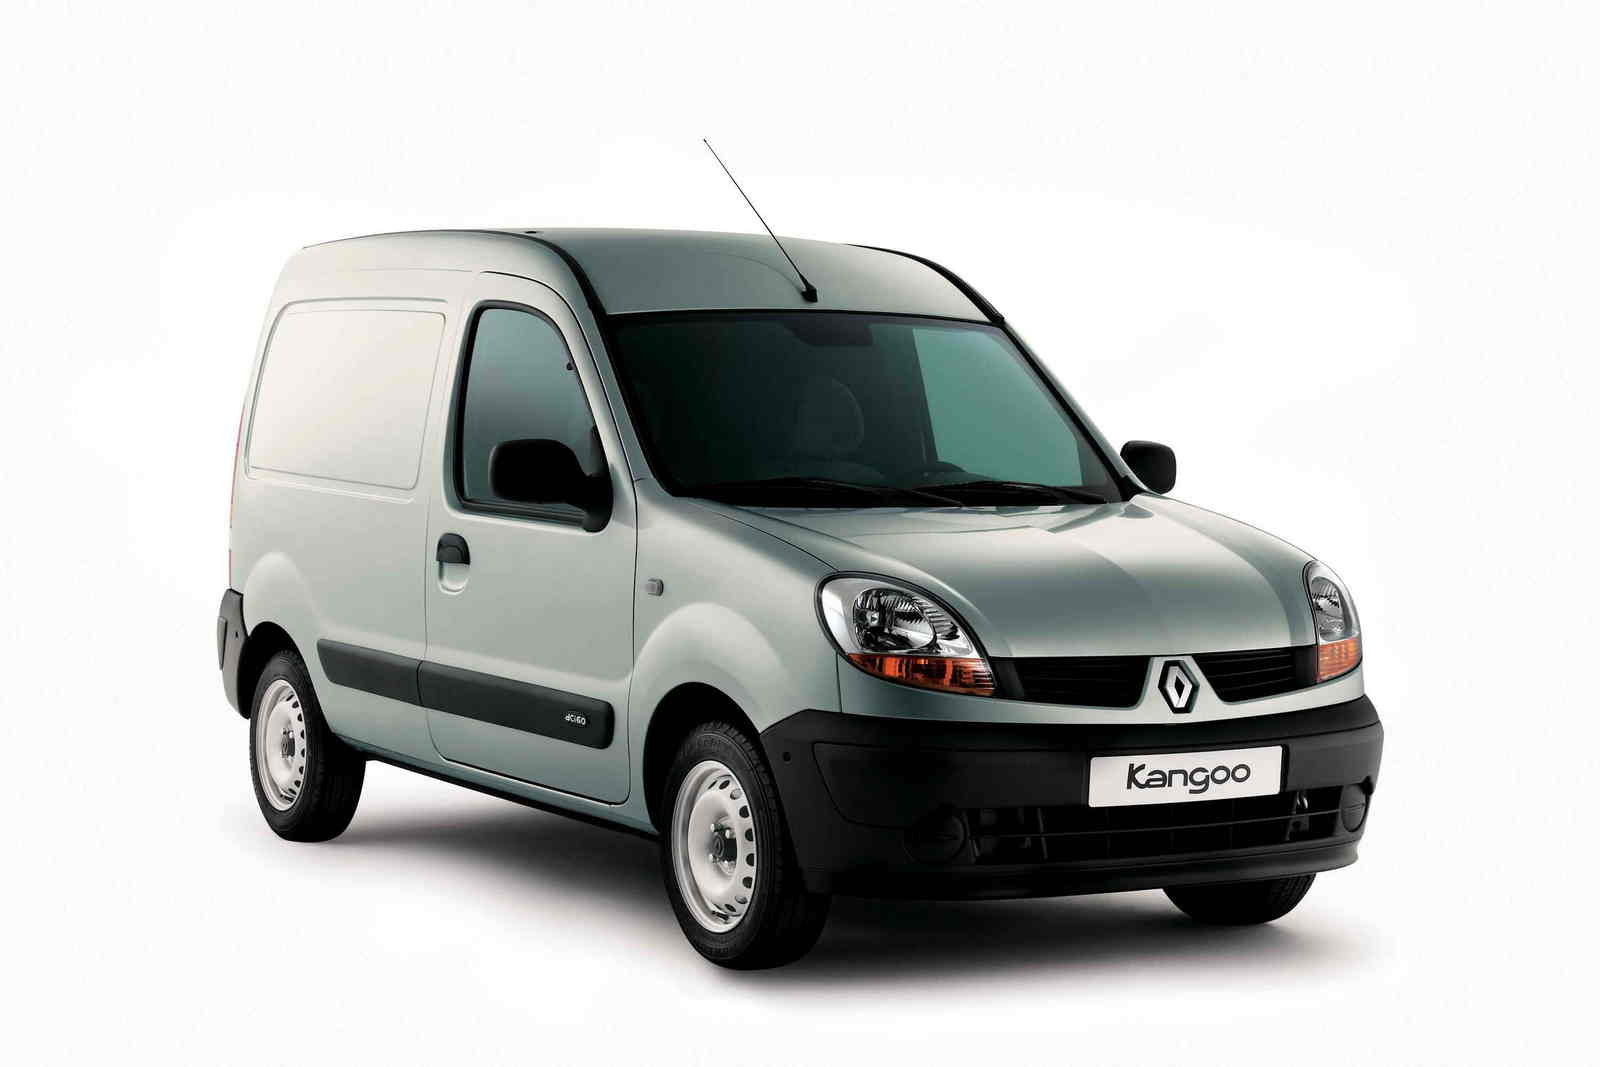 2006 renault kangoo review top speed. Black Bedroom Furniture Sets. Home Design Ideas